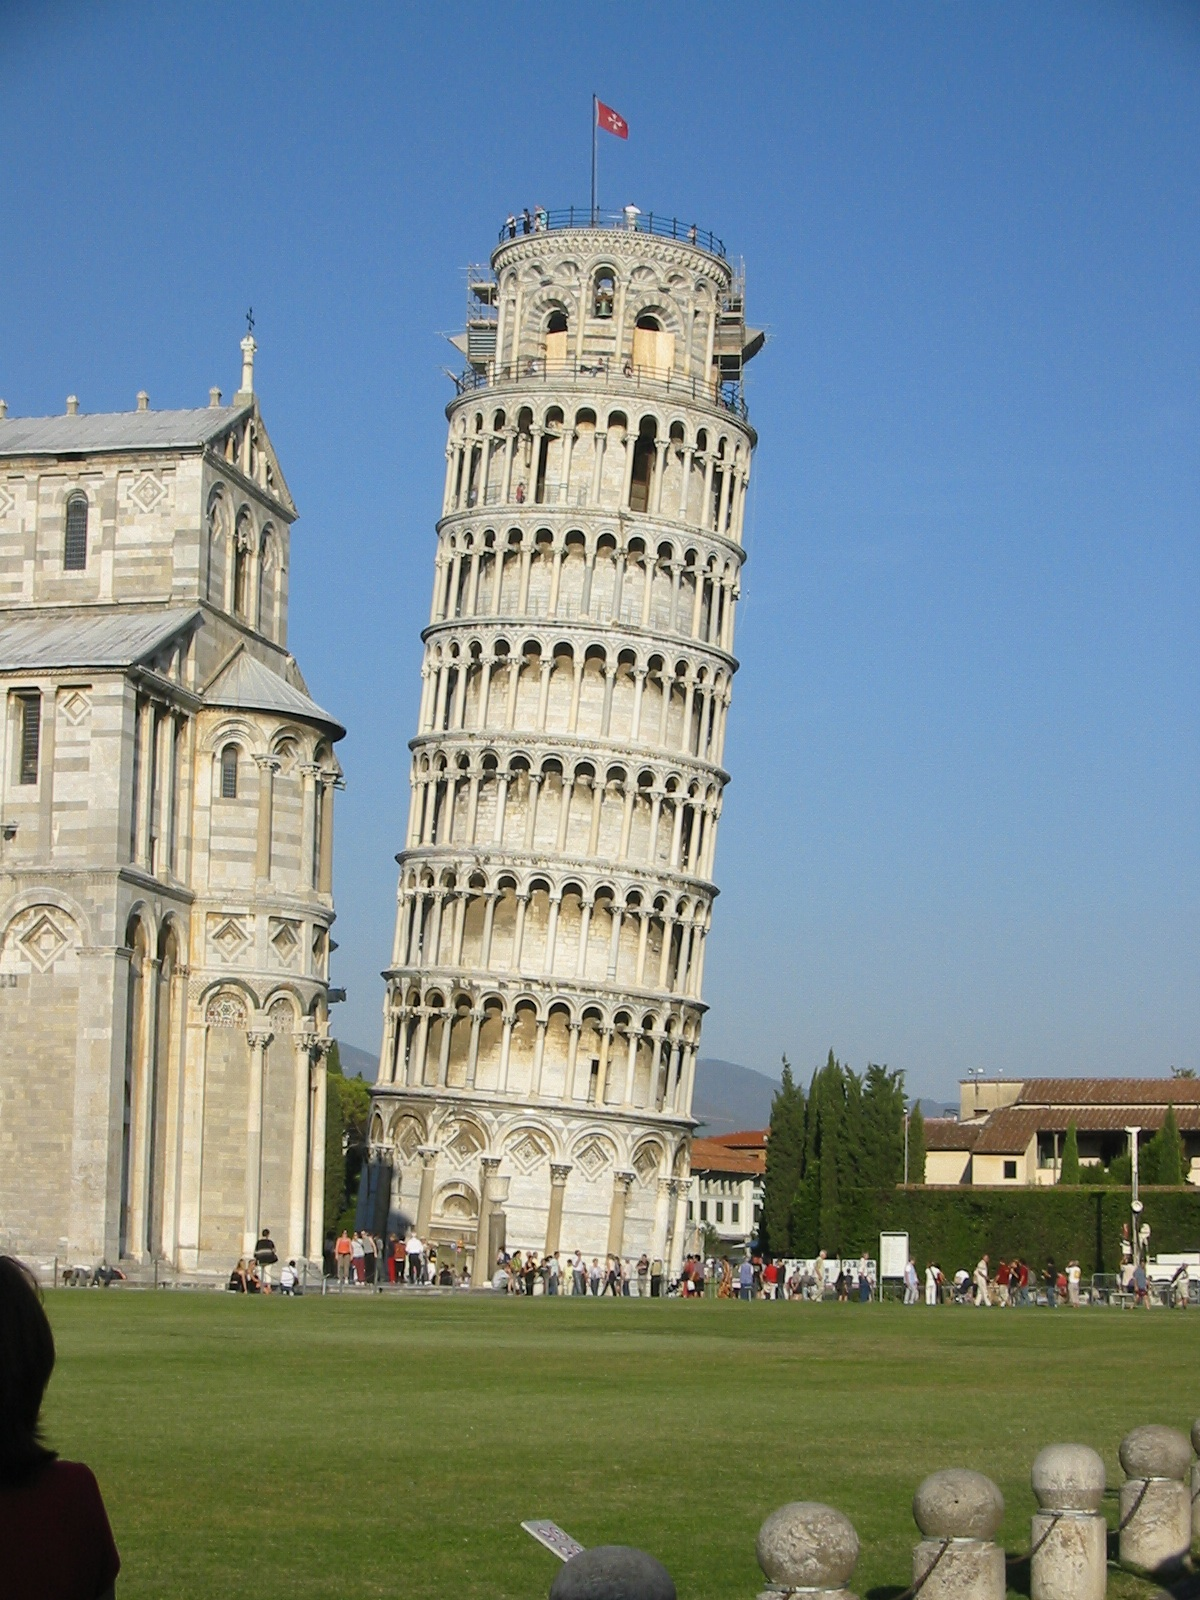 Pisa leaning Tower - Gamesforlanguage.com